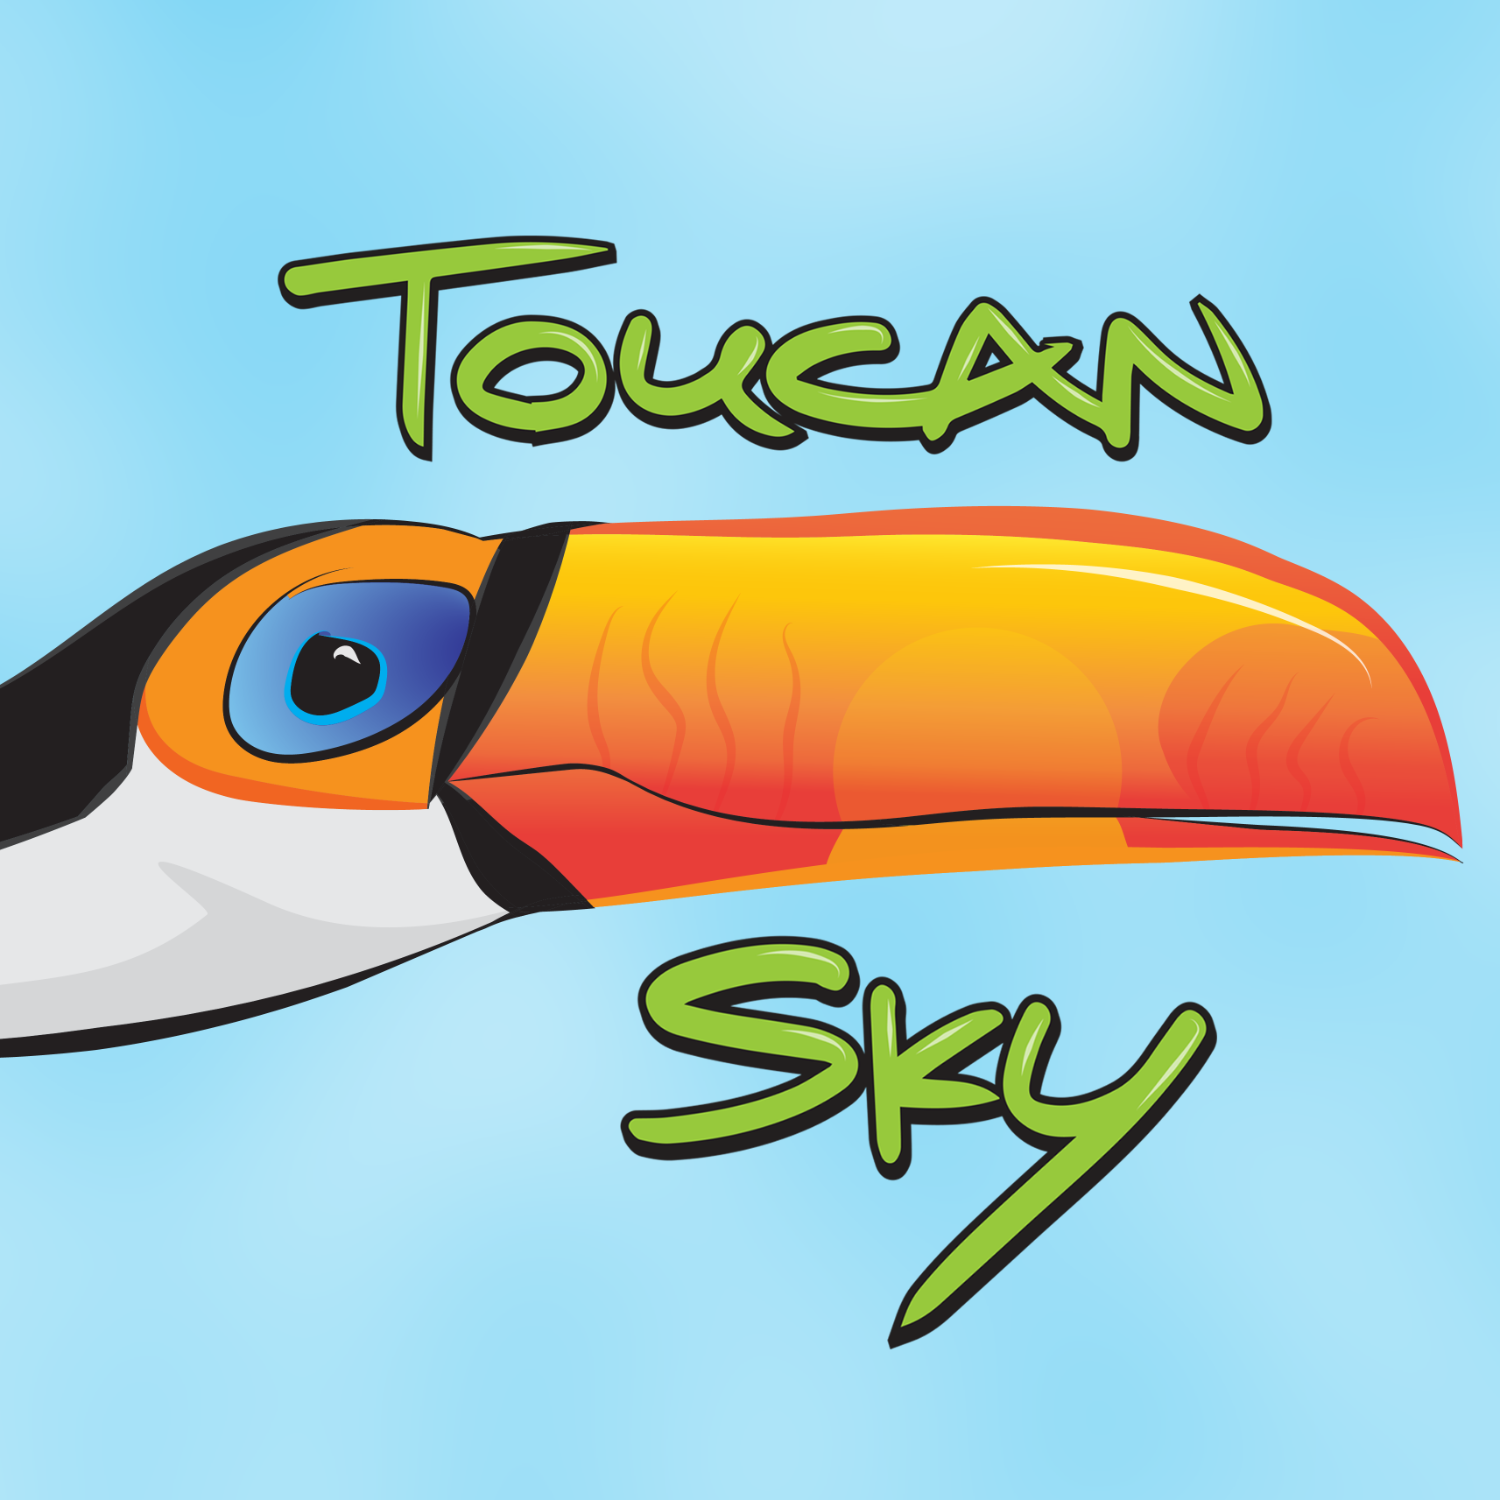 A logo showing a toucan and the words Toucan Sky